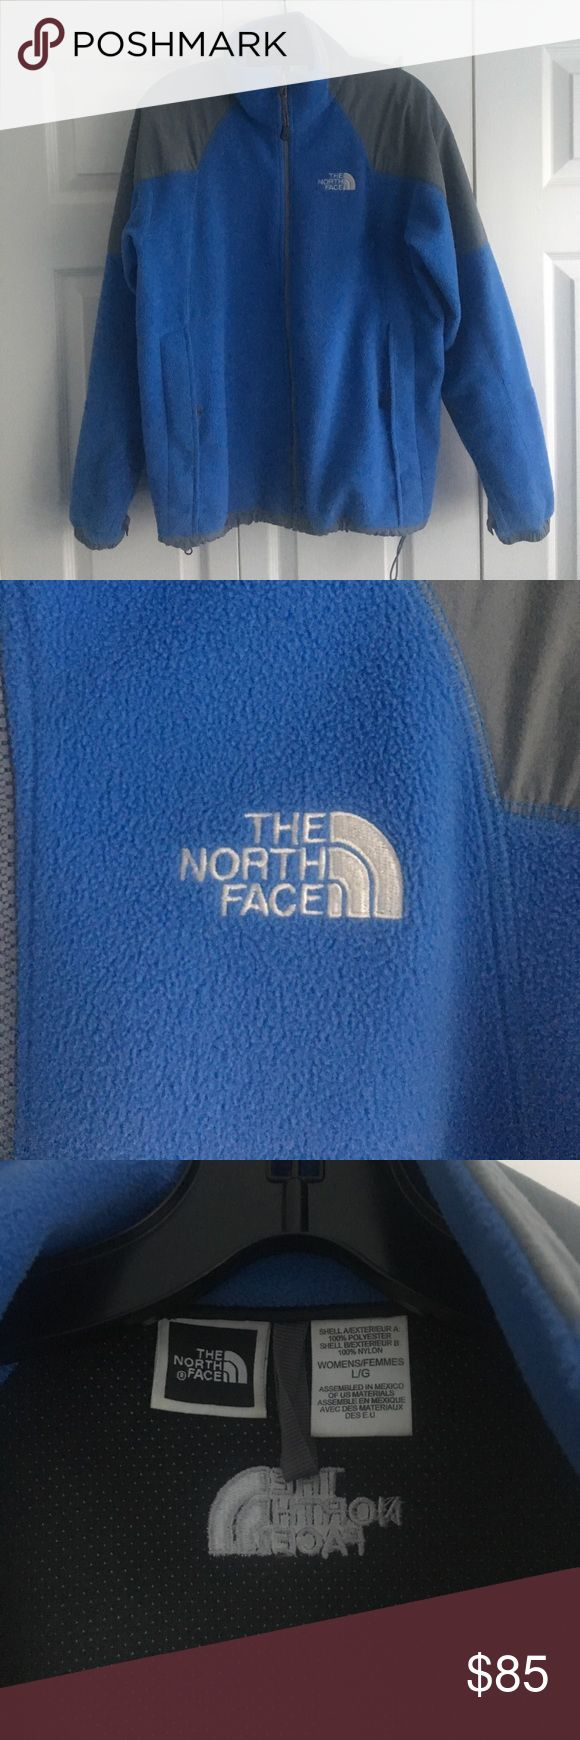 THE NORTH FACE gore windstopper jacket blue THE NORTH FACE gore windstopper jacket blue ladies jacket women's size large. Fleece wind breaker jacket. Looks excellent, very clean!! Worn only a few times. Beautiful shade of blue. Pockets and a cord to scrunch the bottom of the jacket to your desired fit!! Perfect for spring, fall and windy days! The North Face Jackets & Coats